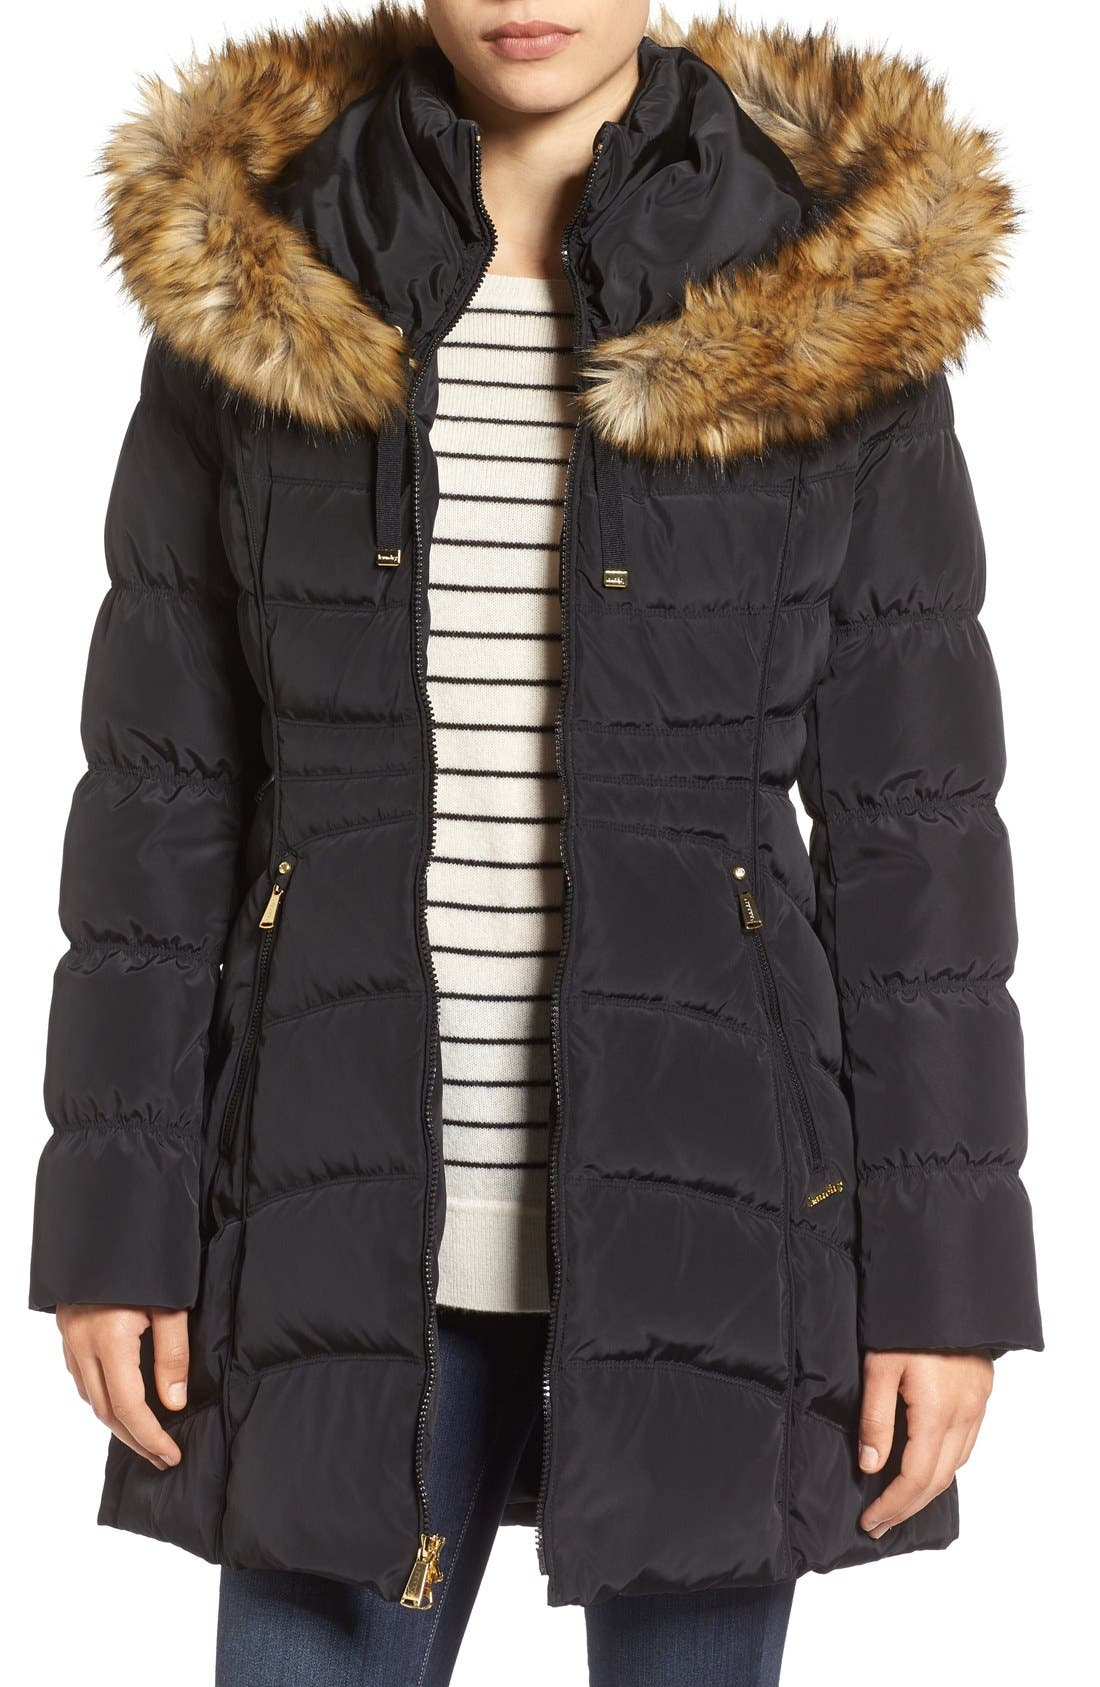 Laundry by Shelli Segal Hooded Down & Feather Fill Coat with Detachable Faux Fur Trim